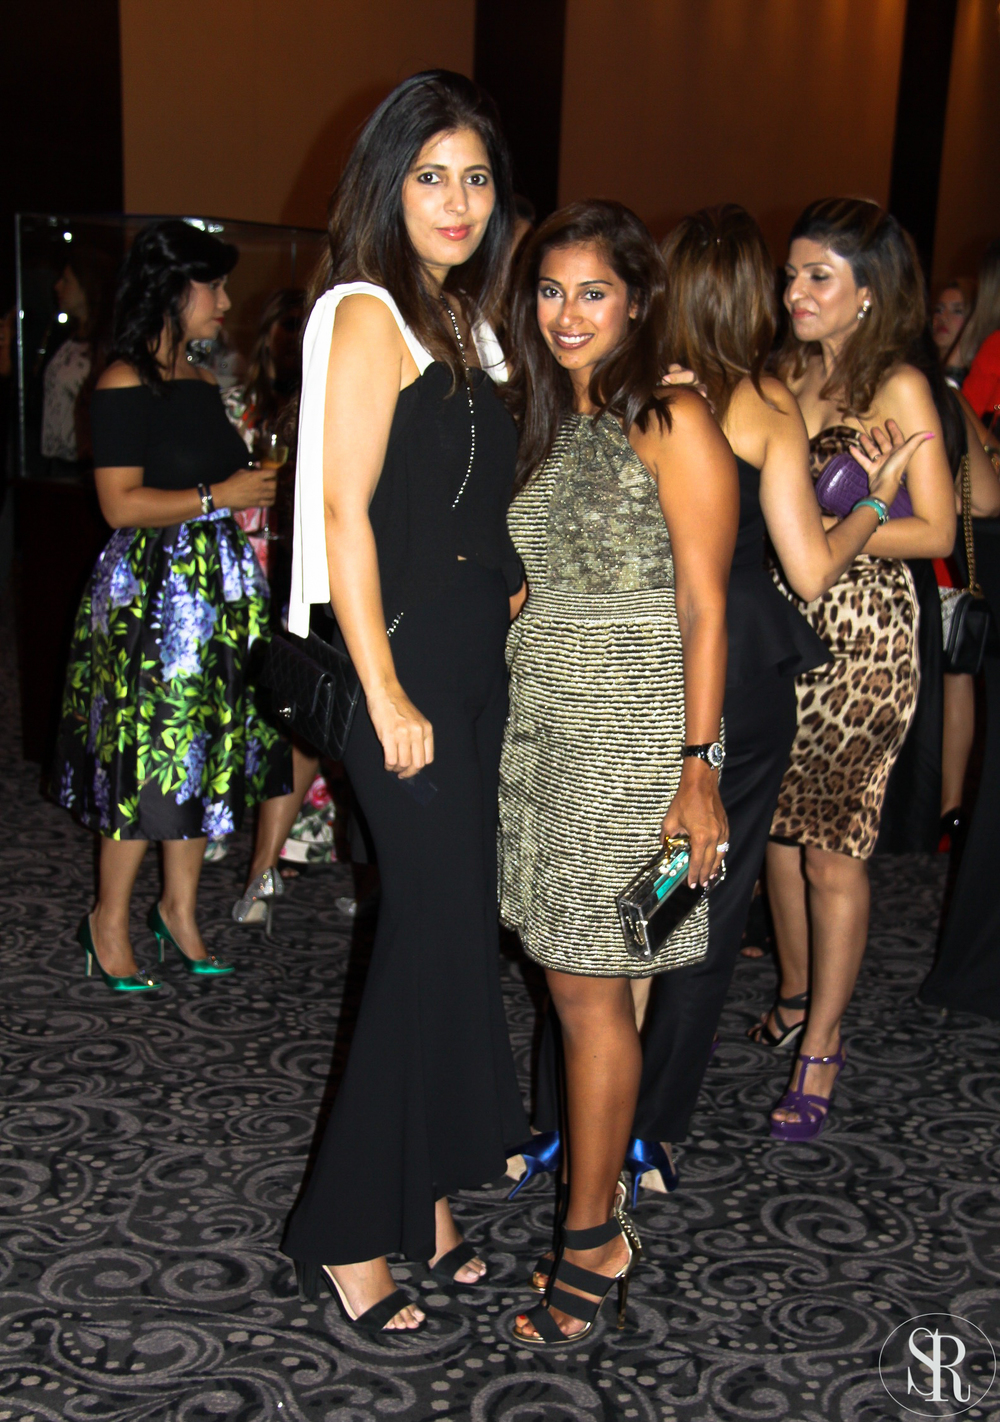 VIP launch of MANOLO BLAHNIK collection Fashion Afternoon Tea by Raffles Dubai-4054.jpg